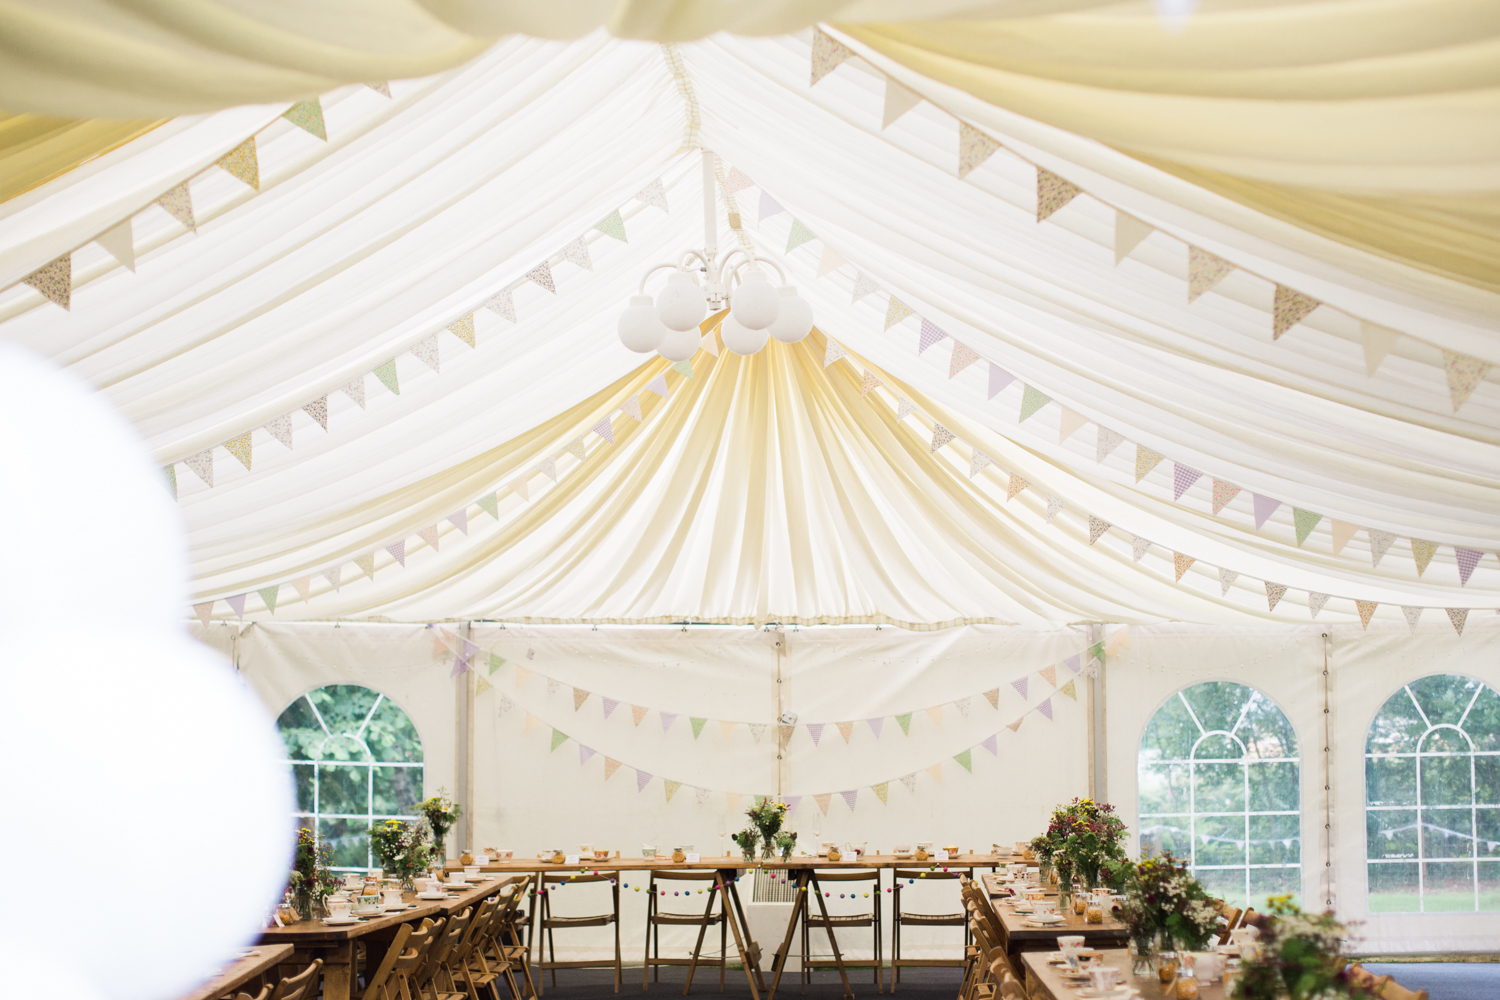 089Lotti & Dave marquee wedding Sophie Evans Photography West Midlands reportage wedding photography.jpg